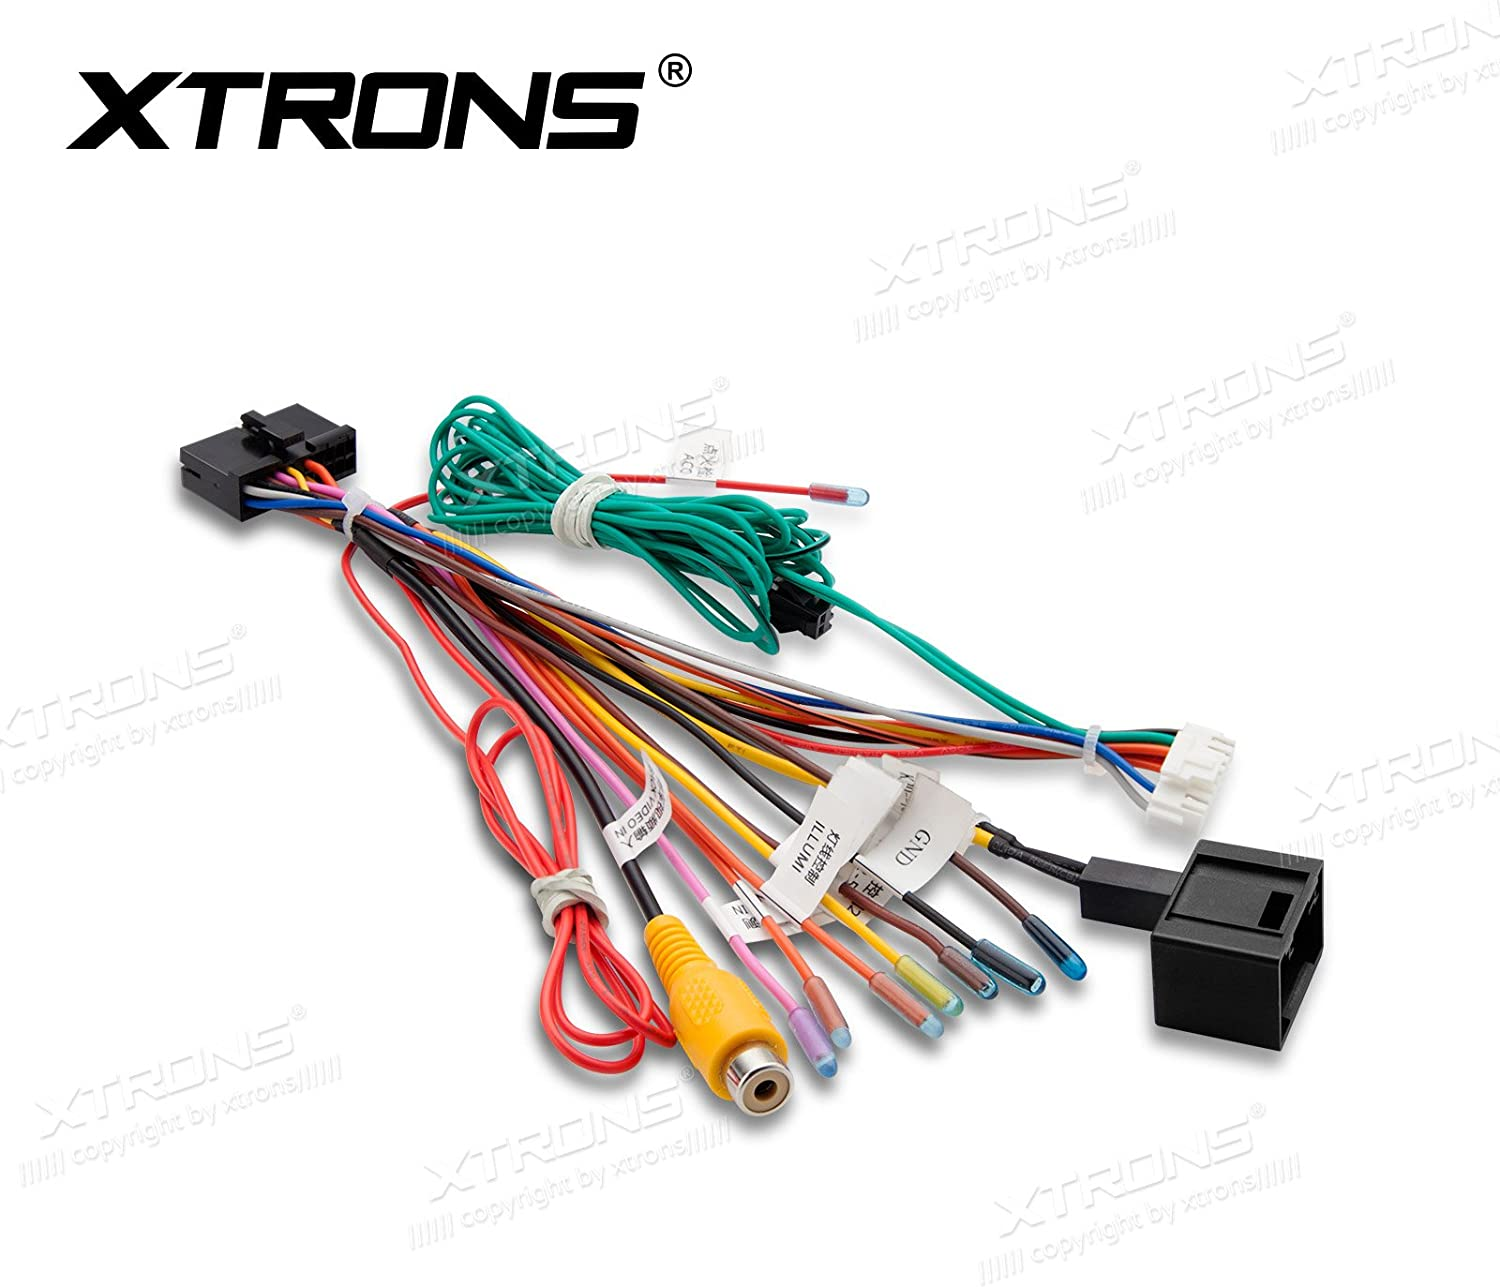 amazon.com: xtrons iso wiring harness adaptor connector cable wire car stereo  radio for xtrons mercedes-benz e/cls: car electronics  amazon.com